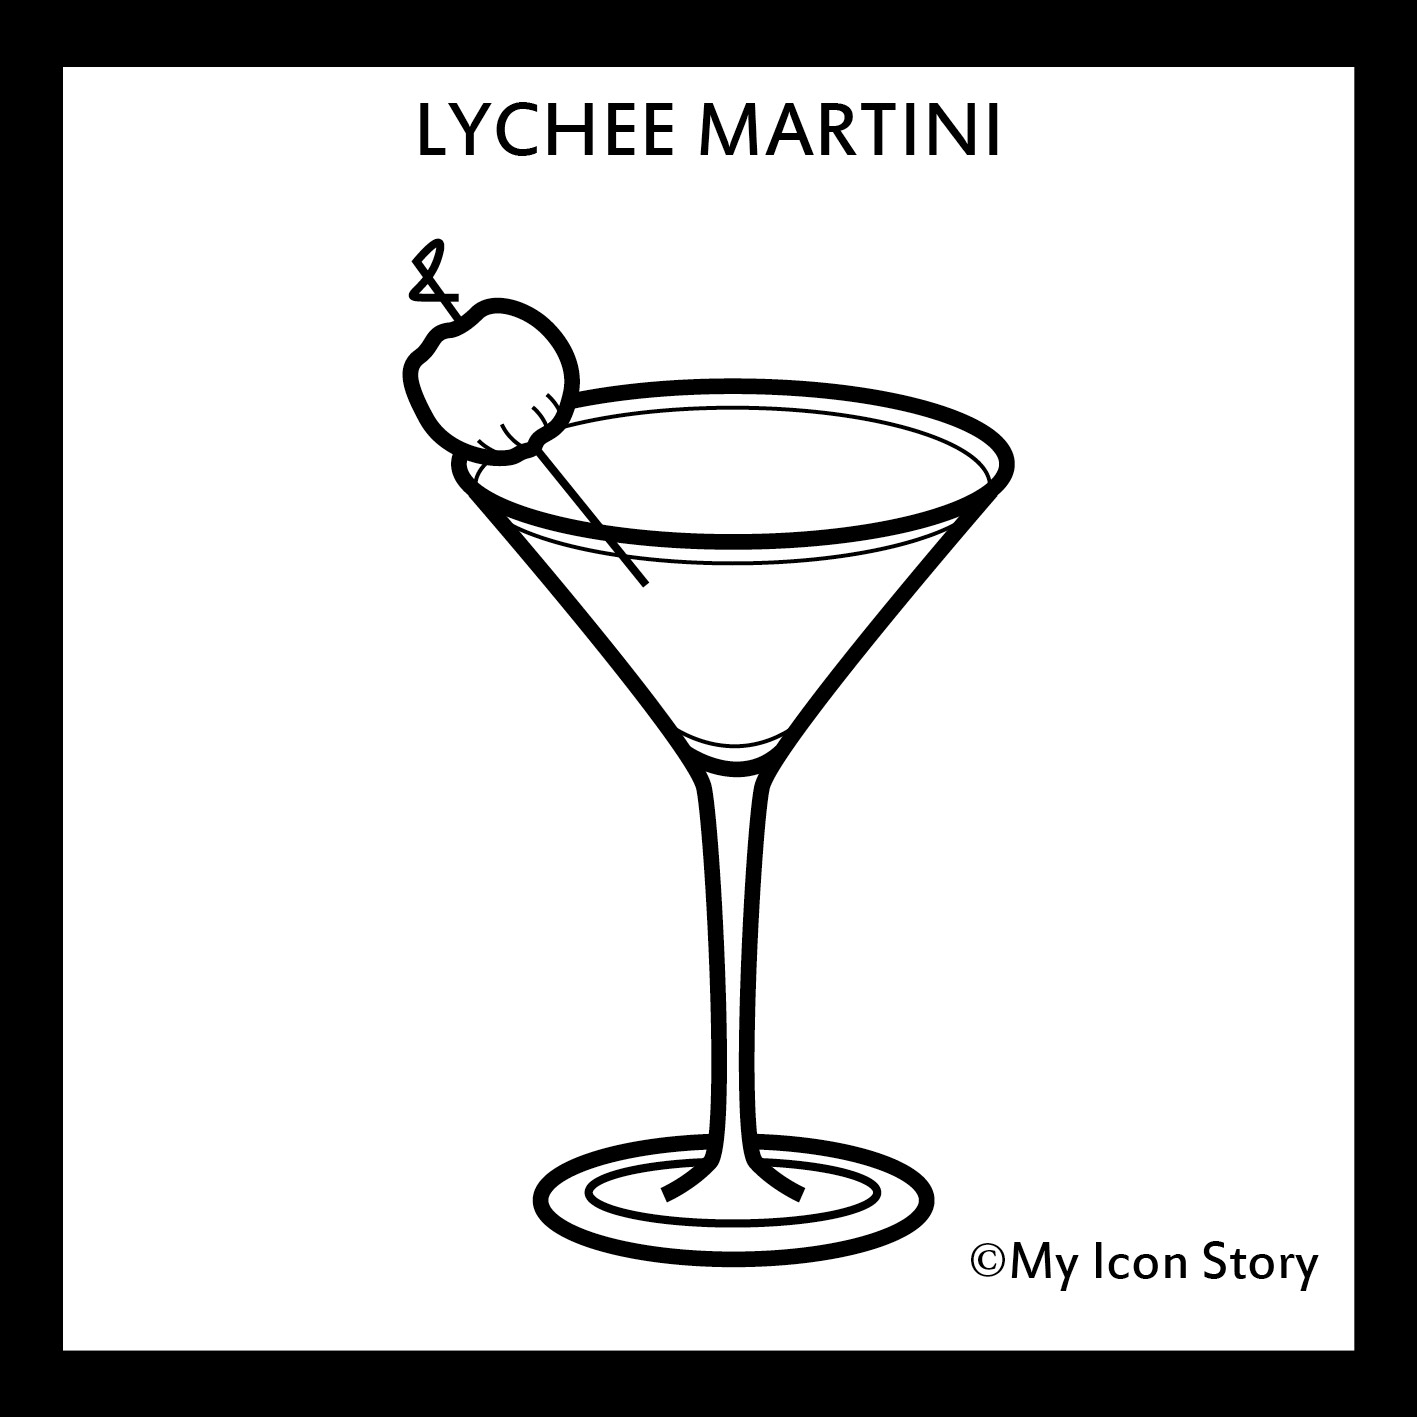 Lychee Martini icon by My Icon Story